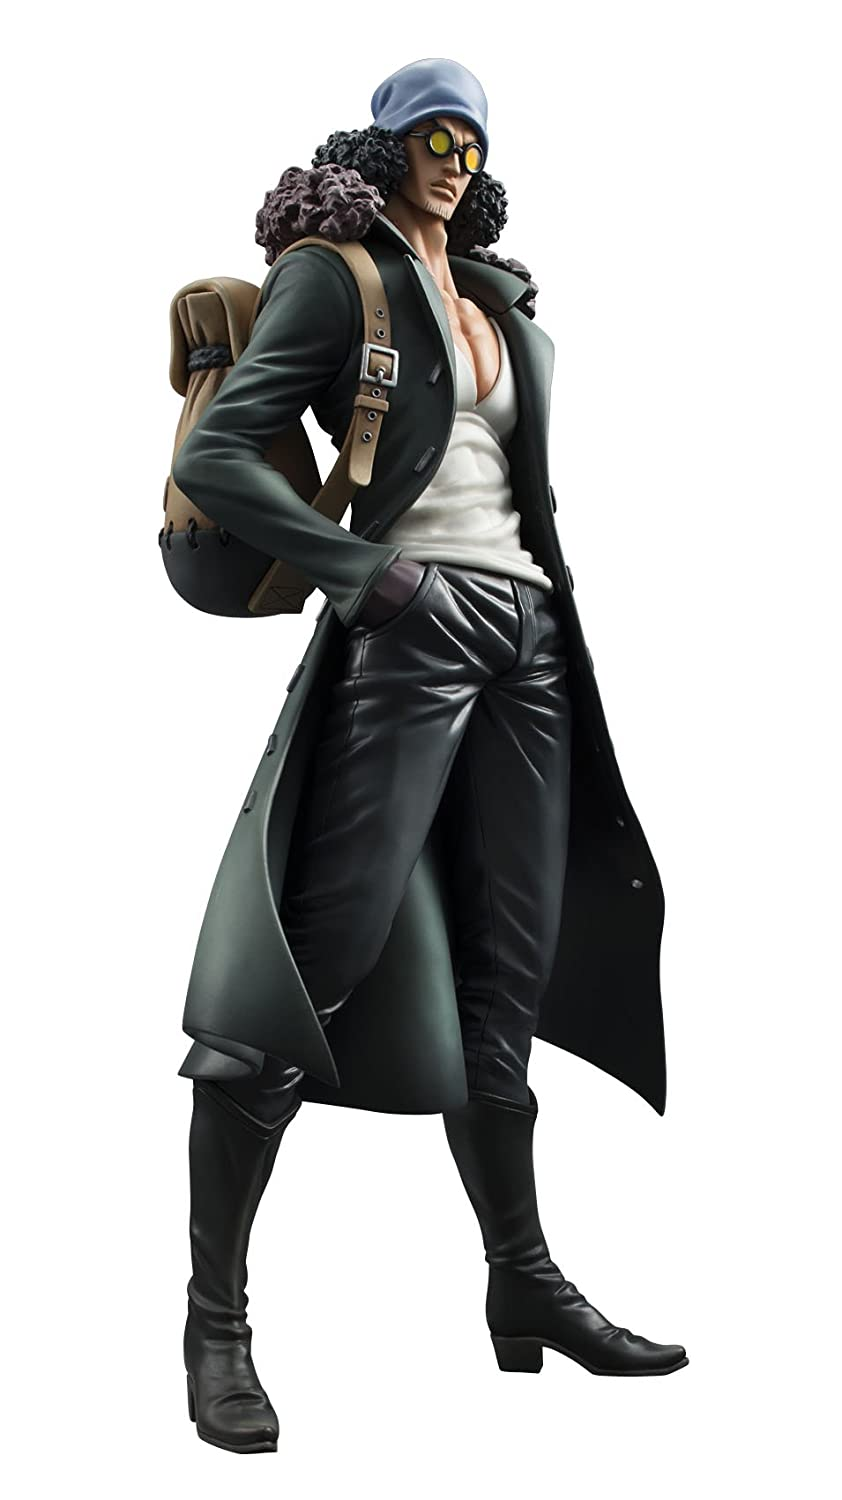 "One Piece P.O.P. (Portrait of Pirates): Kuzan Aokiji ""Edition Z Version"" Ex Model PVC Figure"